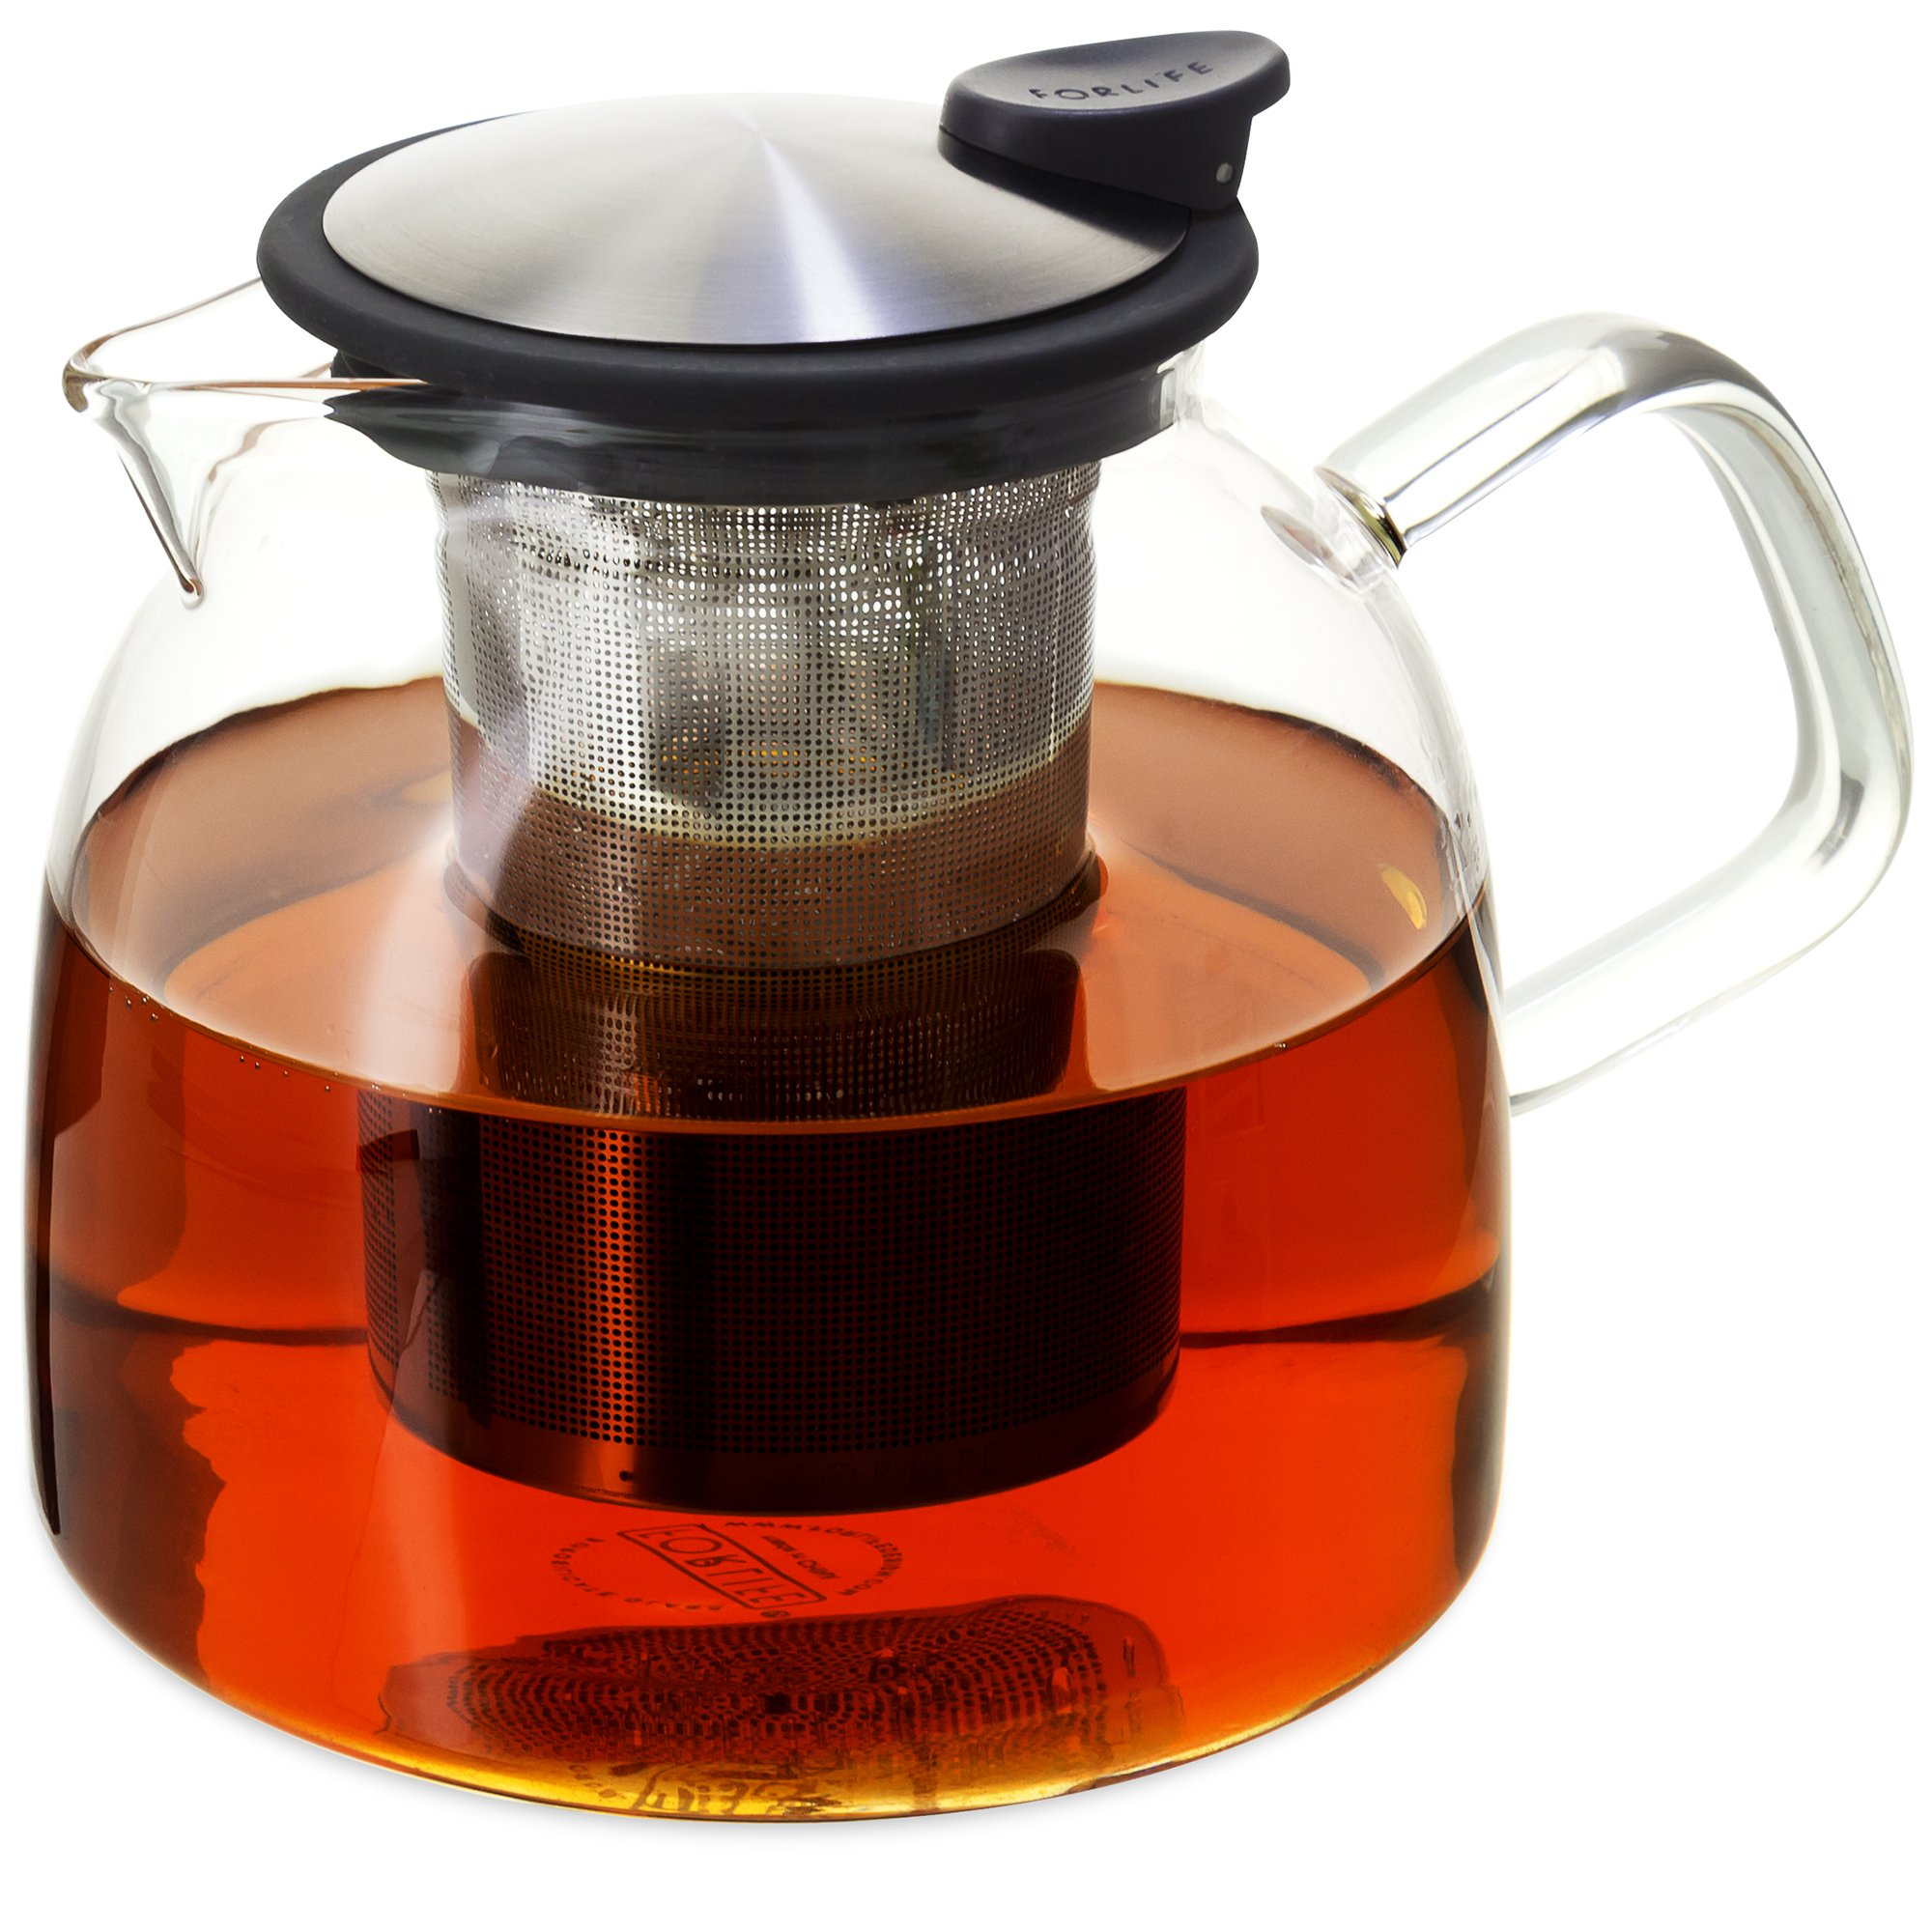 Forlife Bell Glass Teapot with Basket Infuser, 43-Ounce/1280ml, Black Graphite